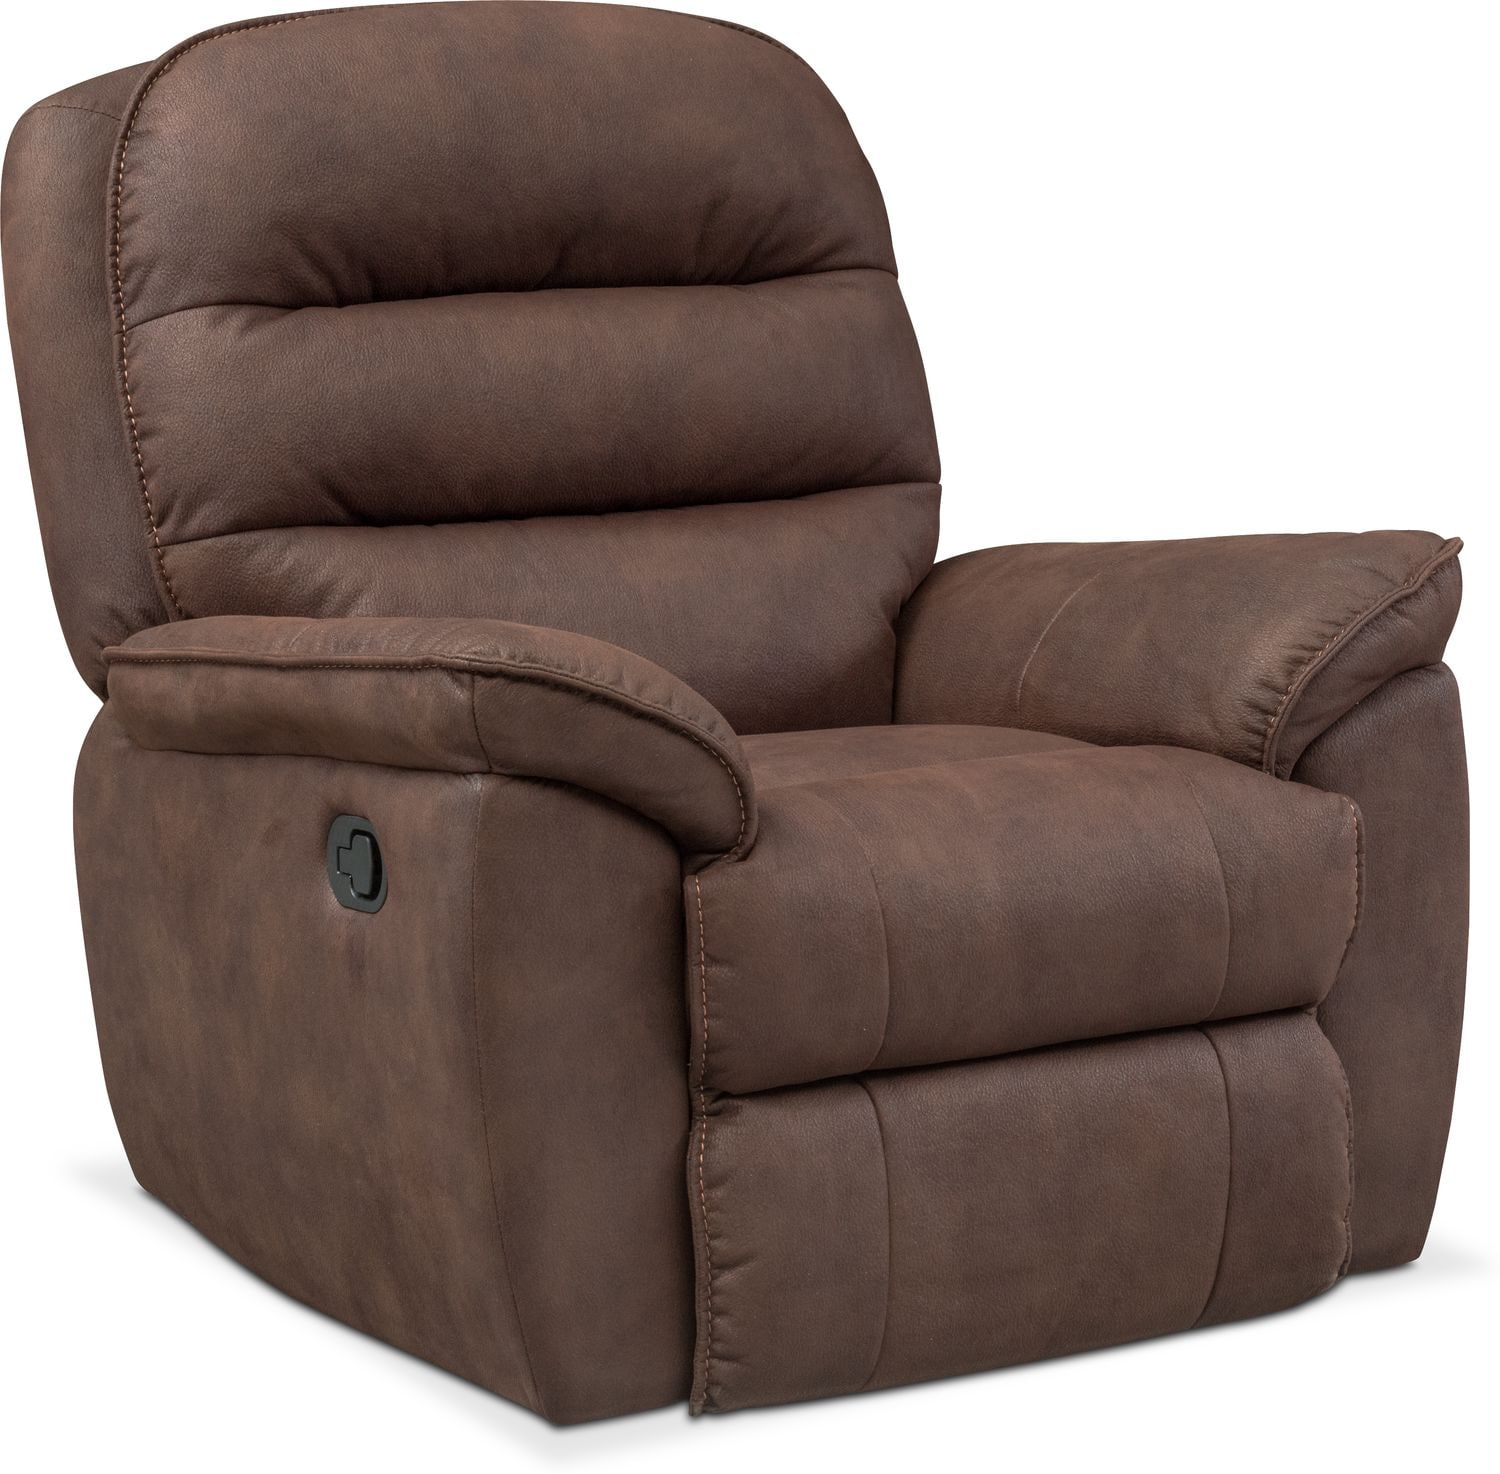 Regis Glider Recliner - Brown  sc 1 st  Value City Furniture & Recliners u0026 Rockers | Value City Furniture | Value City Furniture ... islam-shia.org